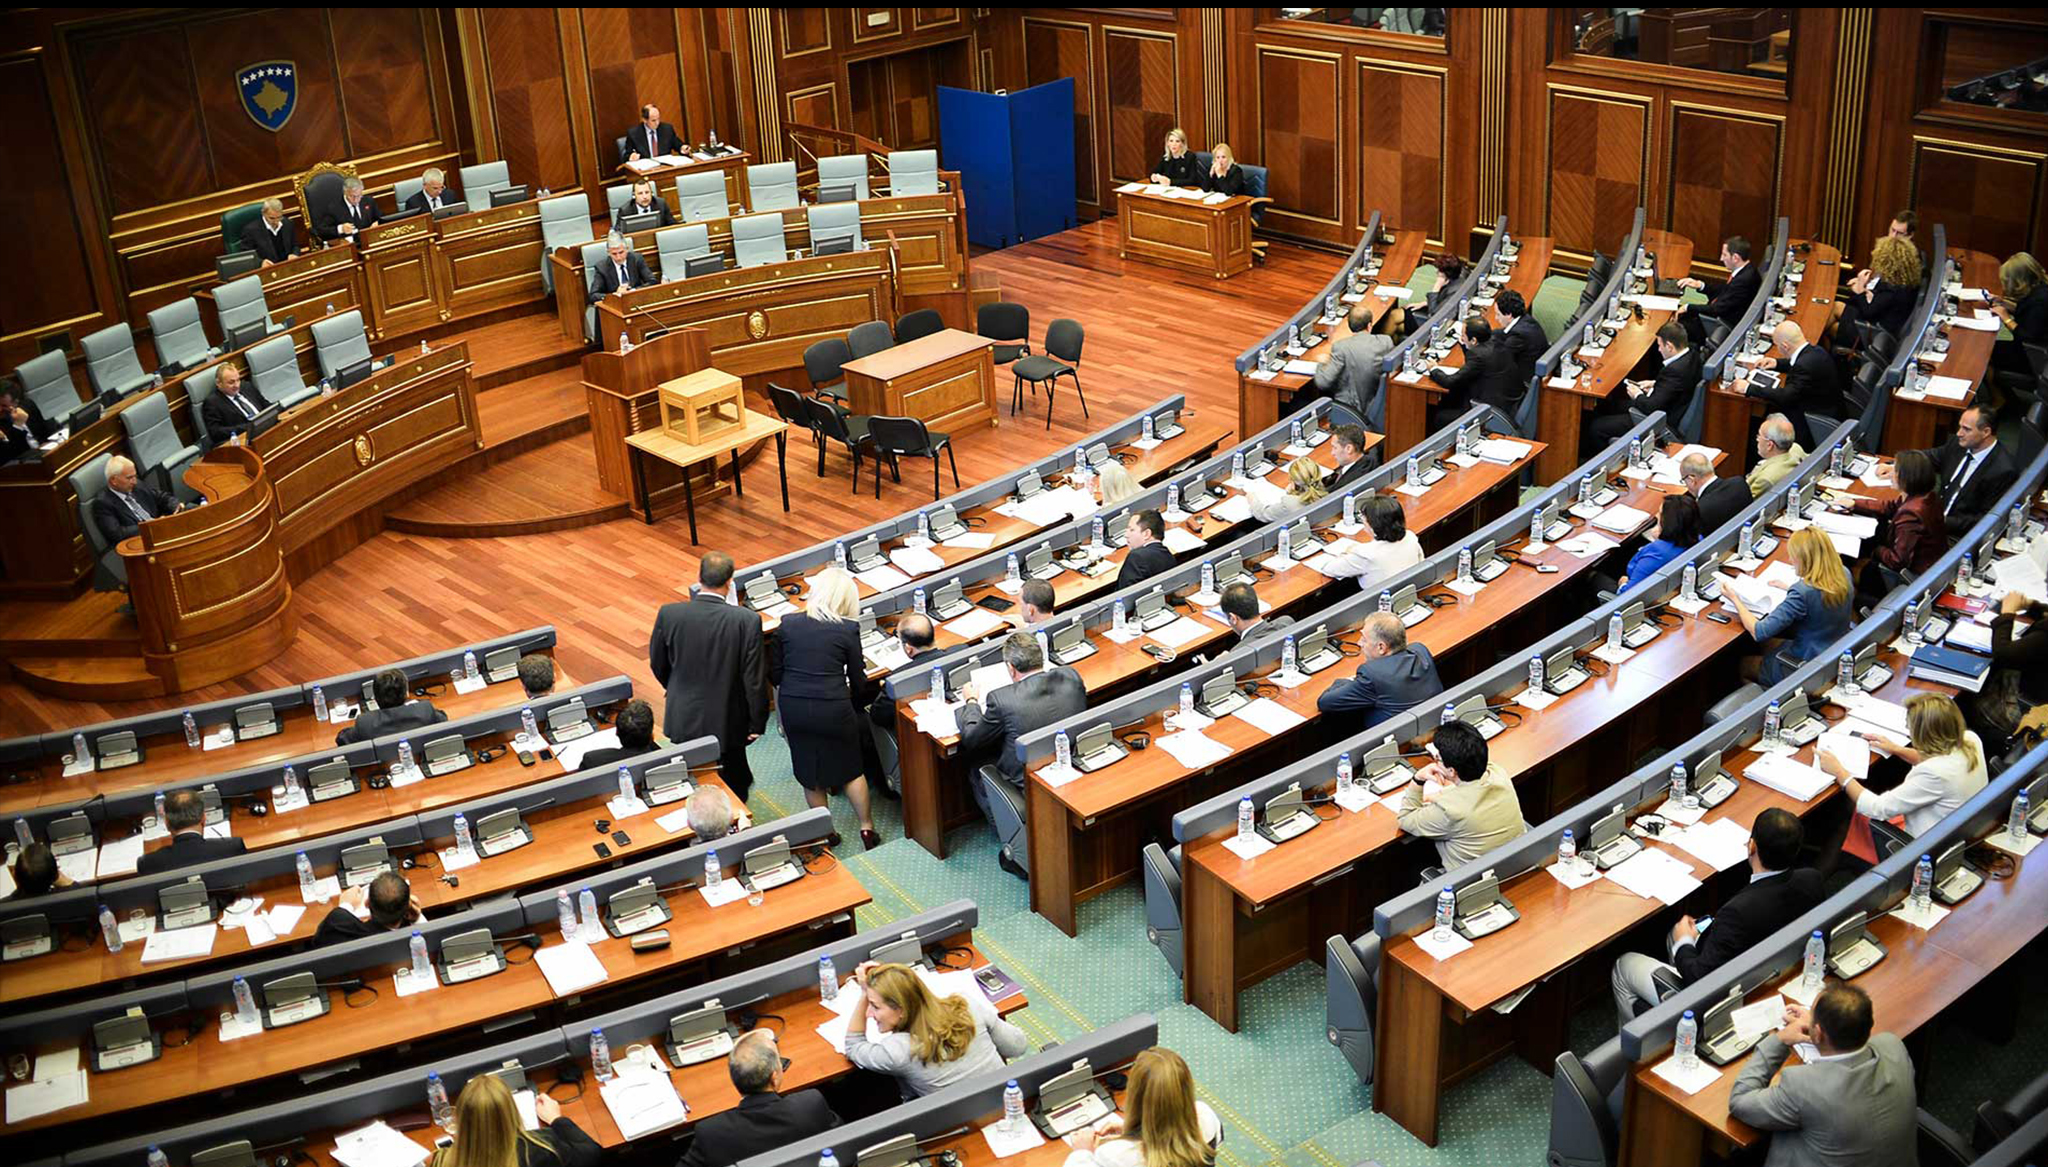 OPENNESS OF THE PARLIAMENT OF KOSOVO AND THE REGION